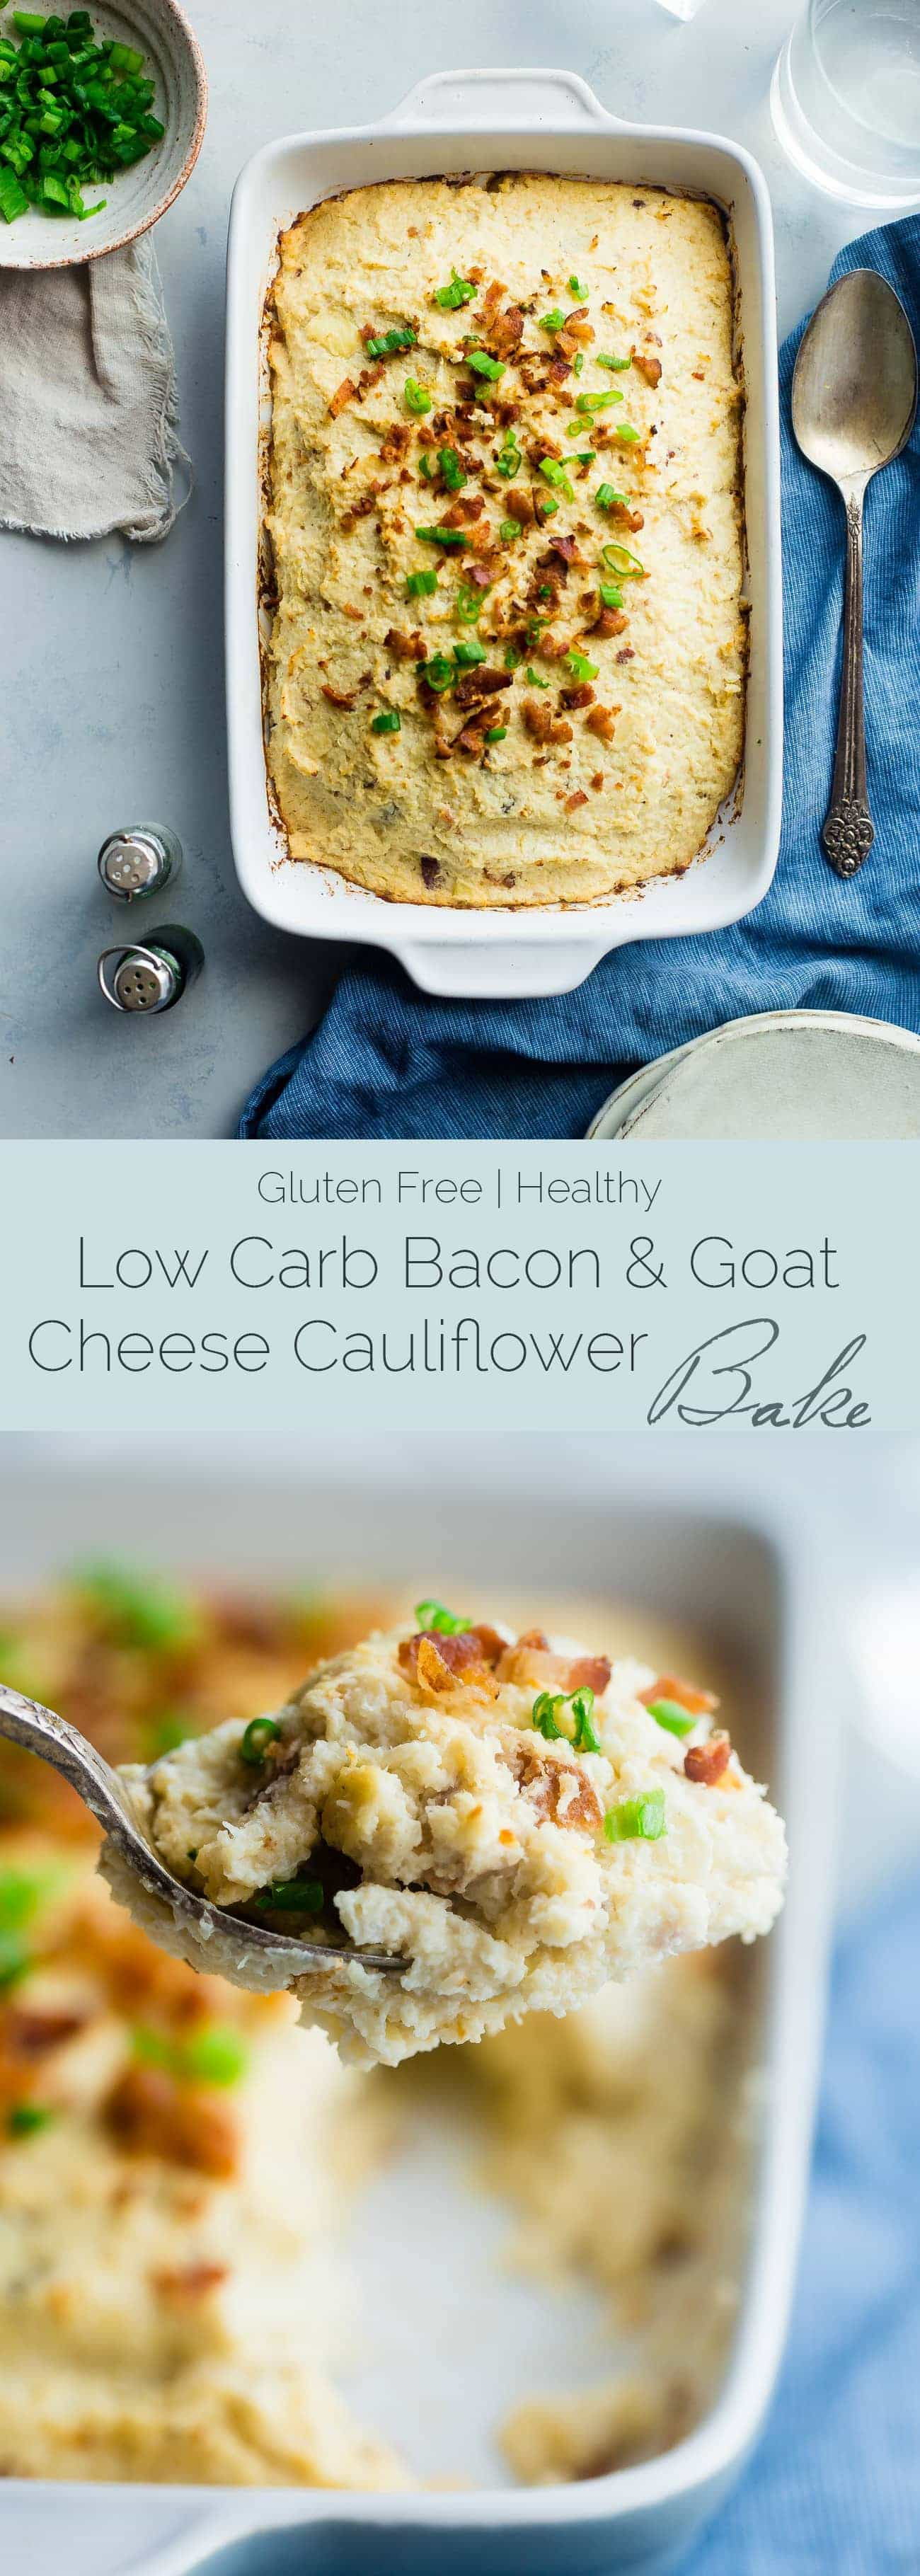 Low Carb Bacon and Goat Cheese Cauliflower Bake - This baked cauliflower is SO creamy and no one ever knows it's made of veggies. You would never guess it's an easy, healthy, low carb and gluten free side dish that even kids love!   Foodfaithfitness.com   @FoodFaithFit